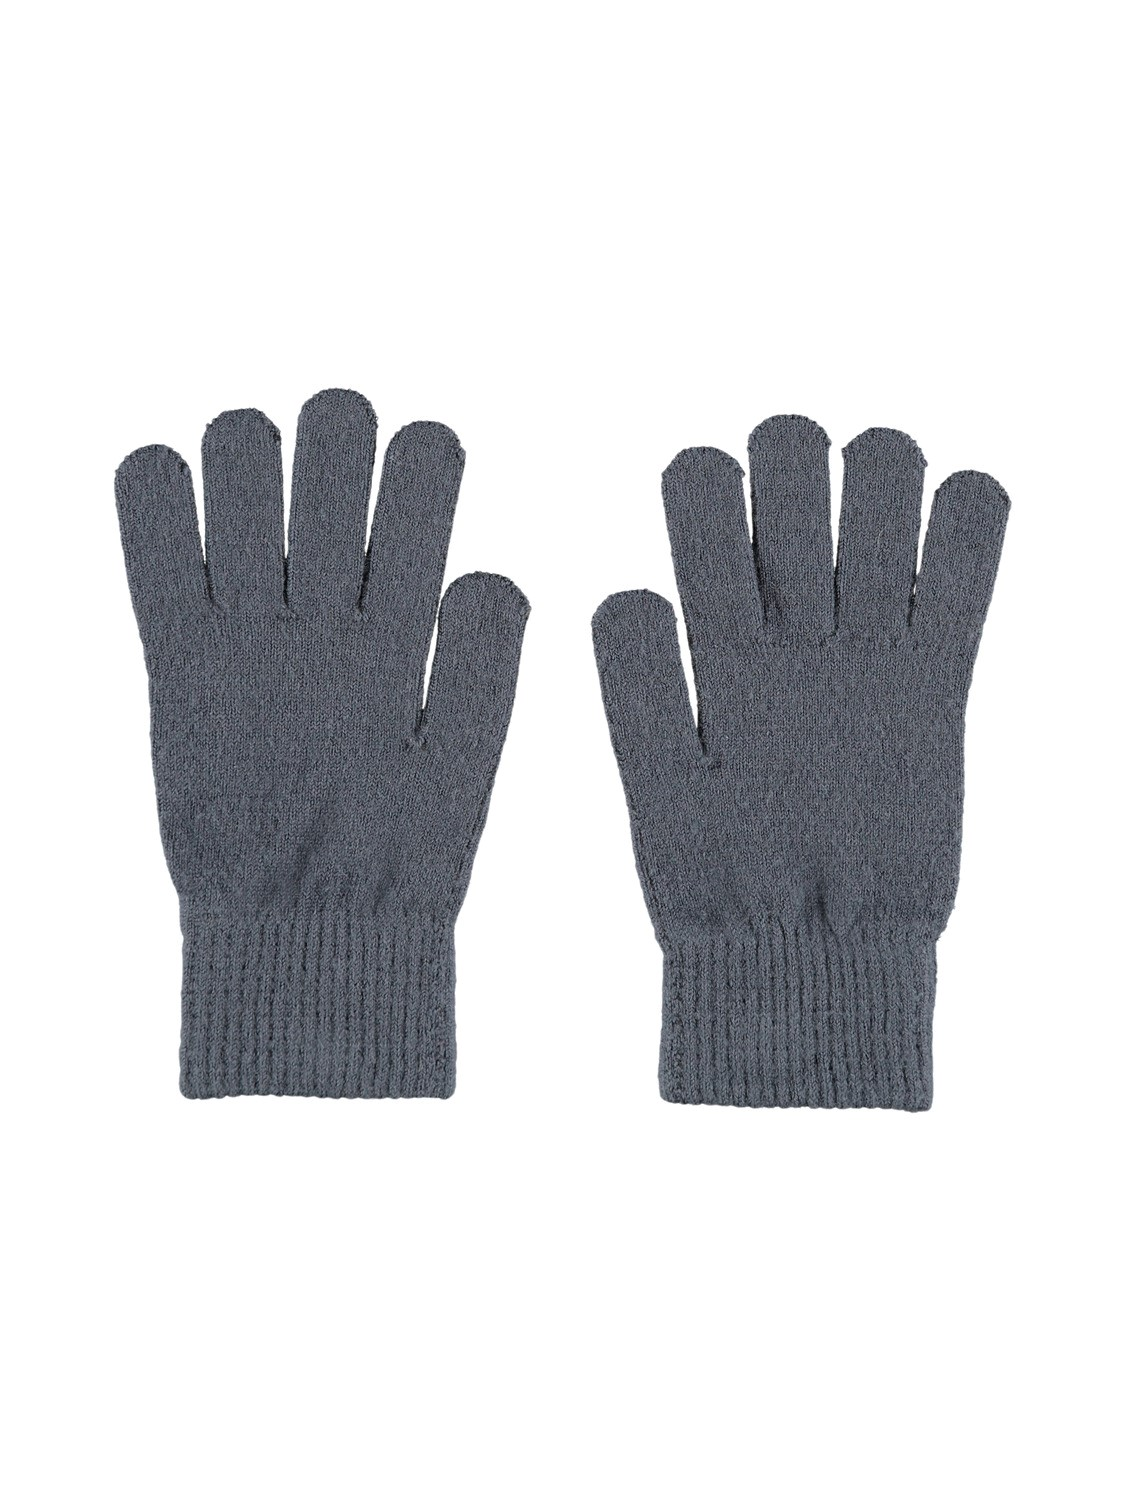 Wholla Wool Gloves Kids - Ombre Blue